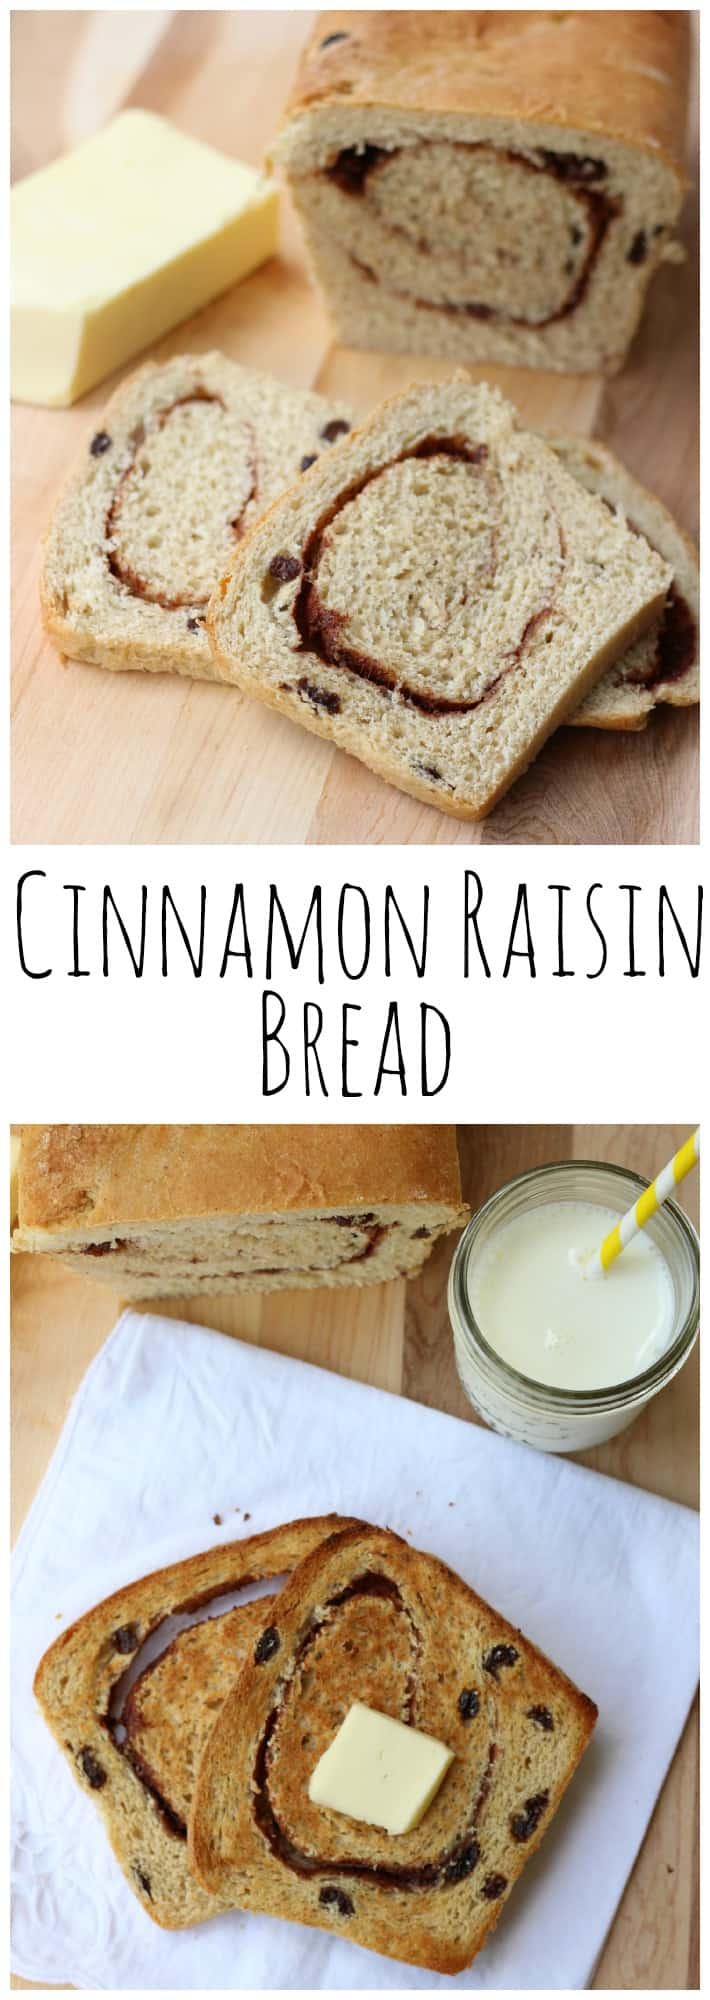 Looking for an Easy Homemade Cinnamon Raisin Bread Recipe? This one yields 3 loaves, perfect to make all at once and freeze for later!